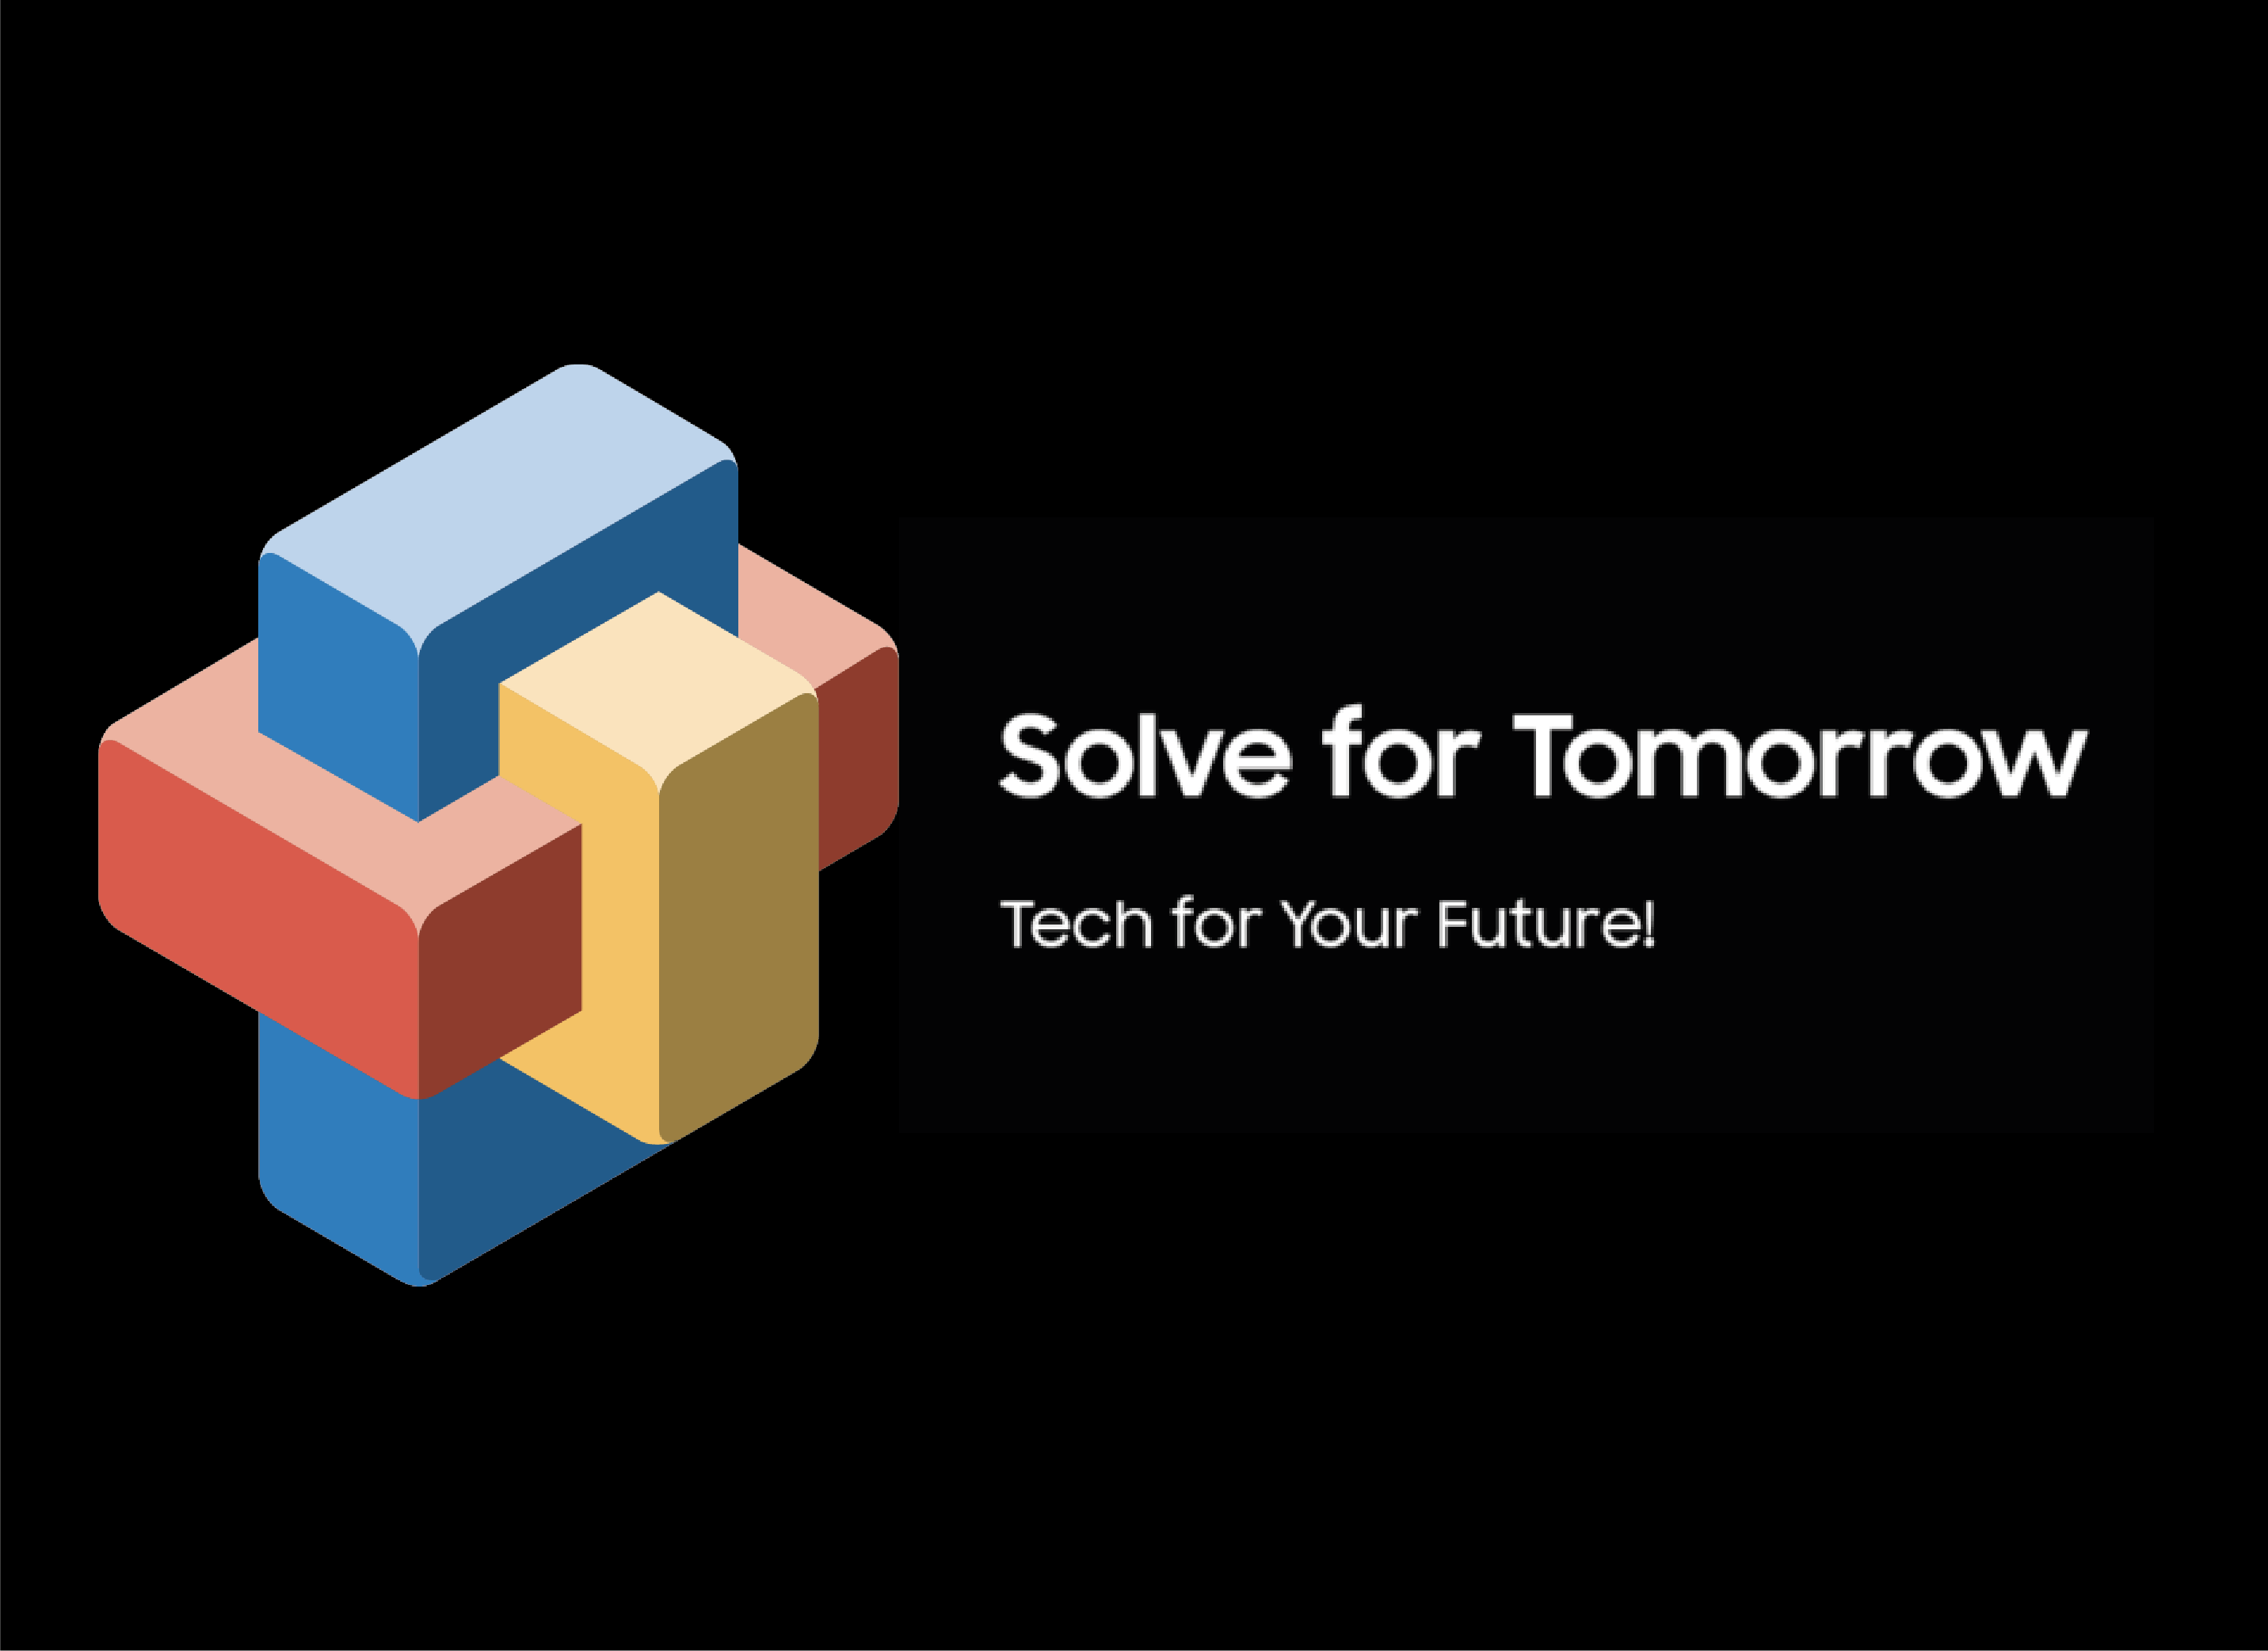 Samsung – Solve for Tomorrow: Tech for Your Future